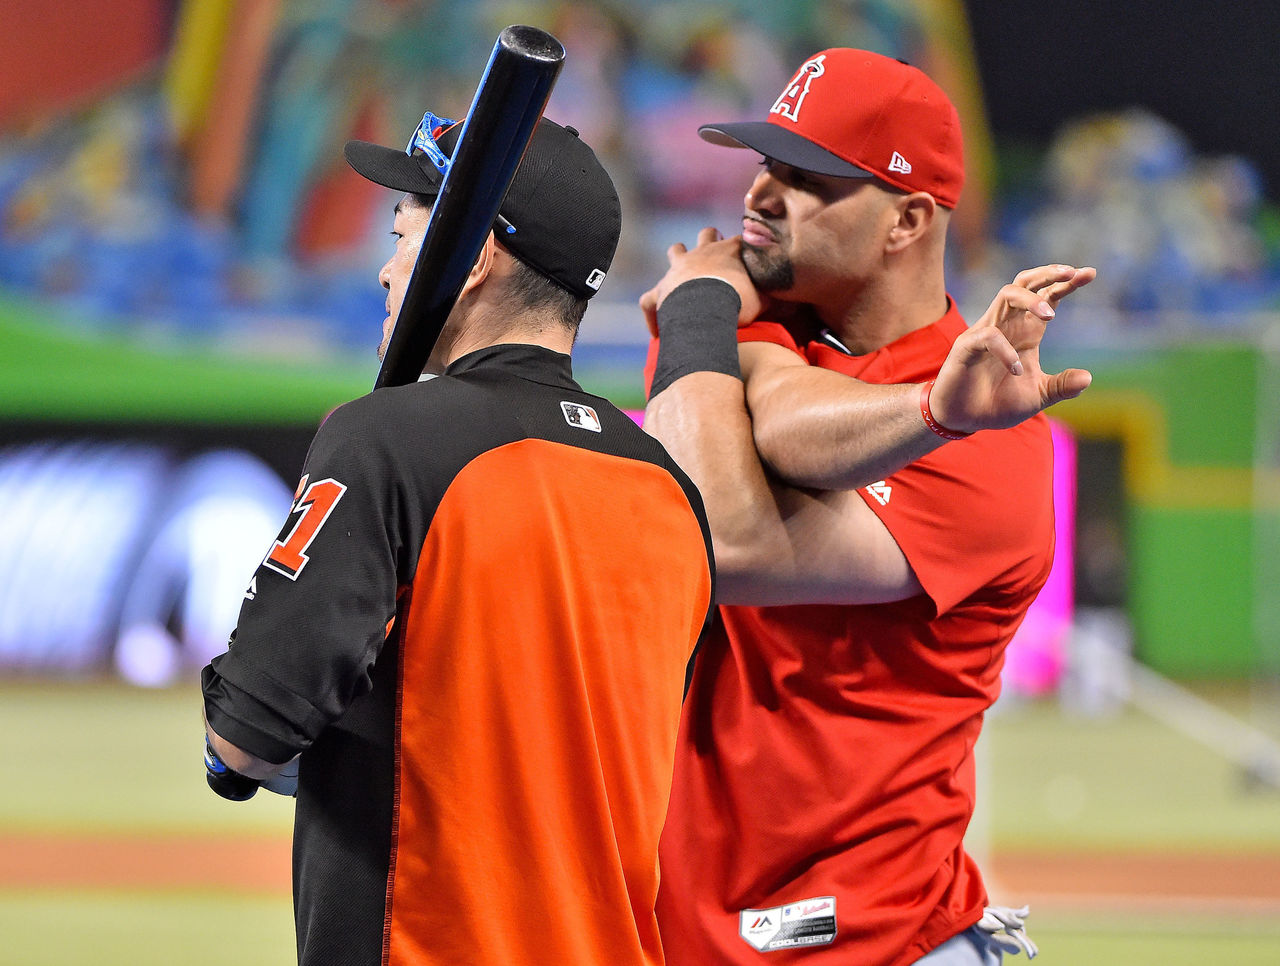 Cropped 2017 05 26t212845z 130942517 nocid rtrmadp 3 mlb los angeles angels at miami marlins